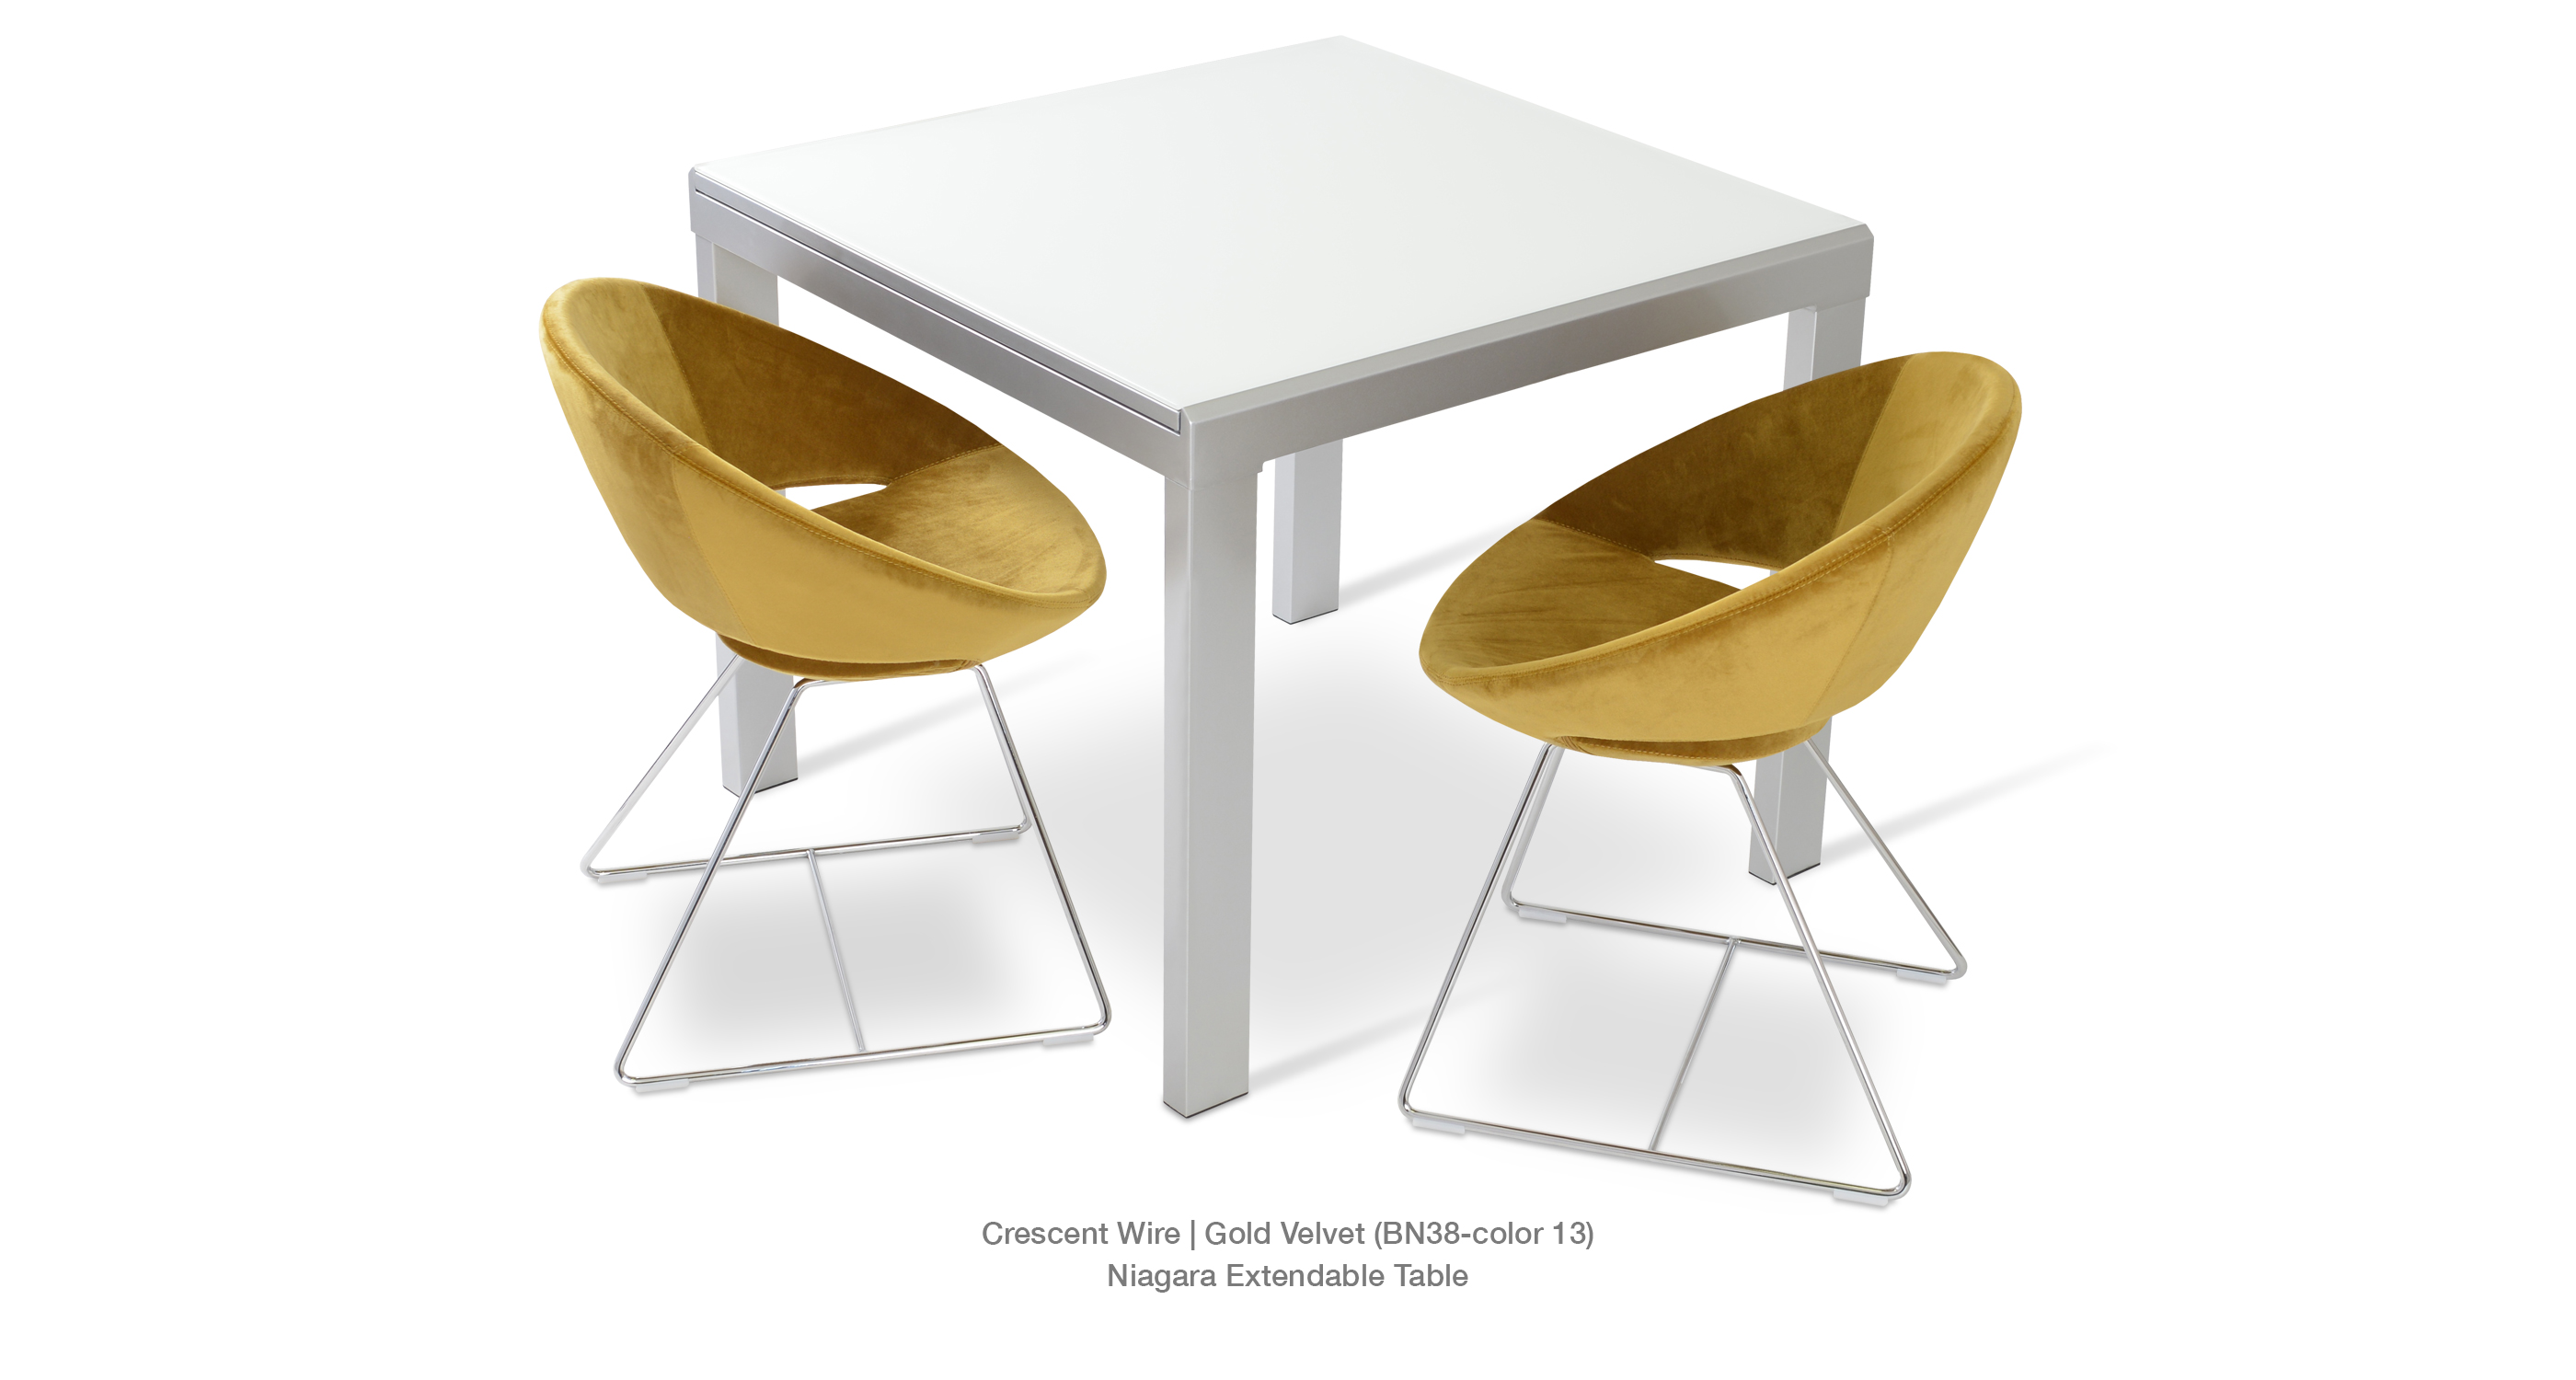 Crescent Wire Gold Velvet Niagara Table